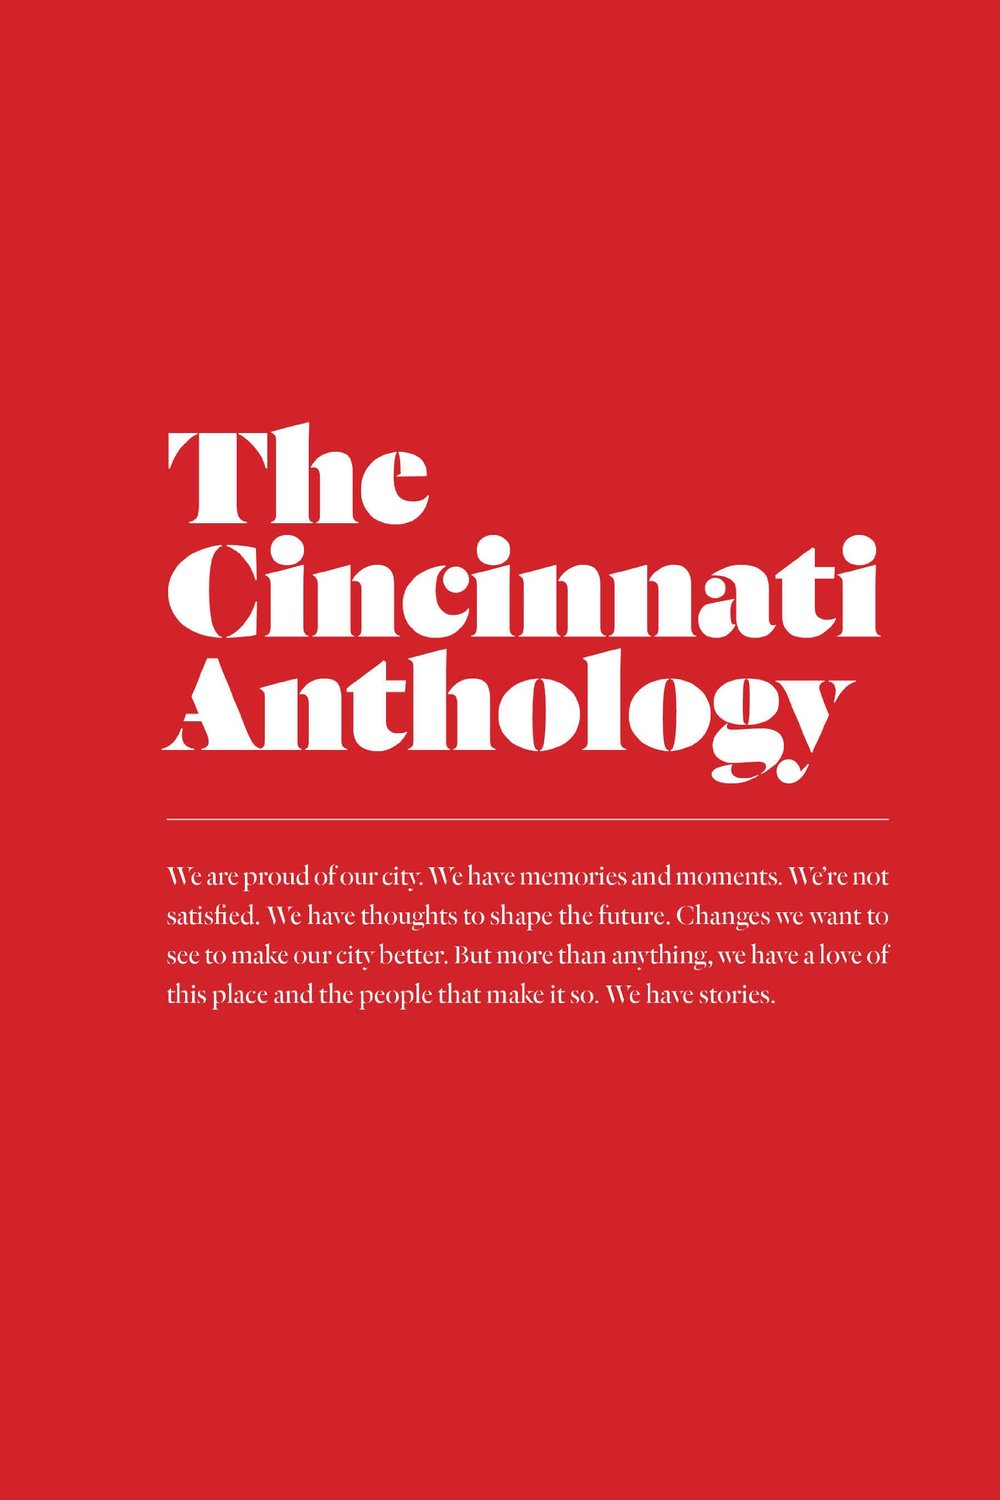 Cincinnati Anthology.jpg